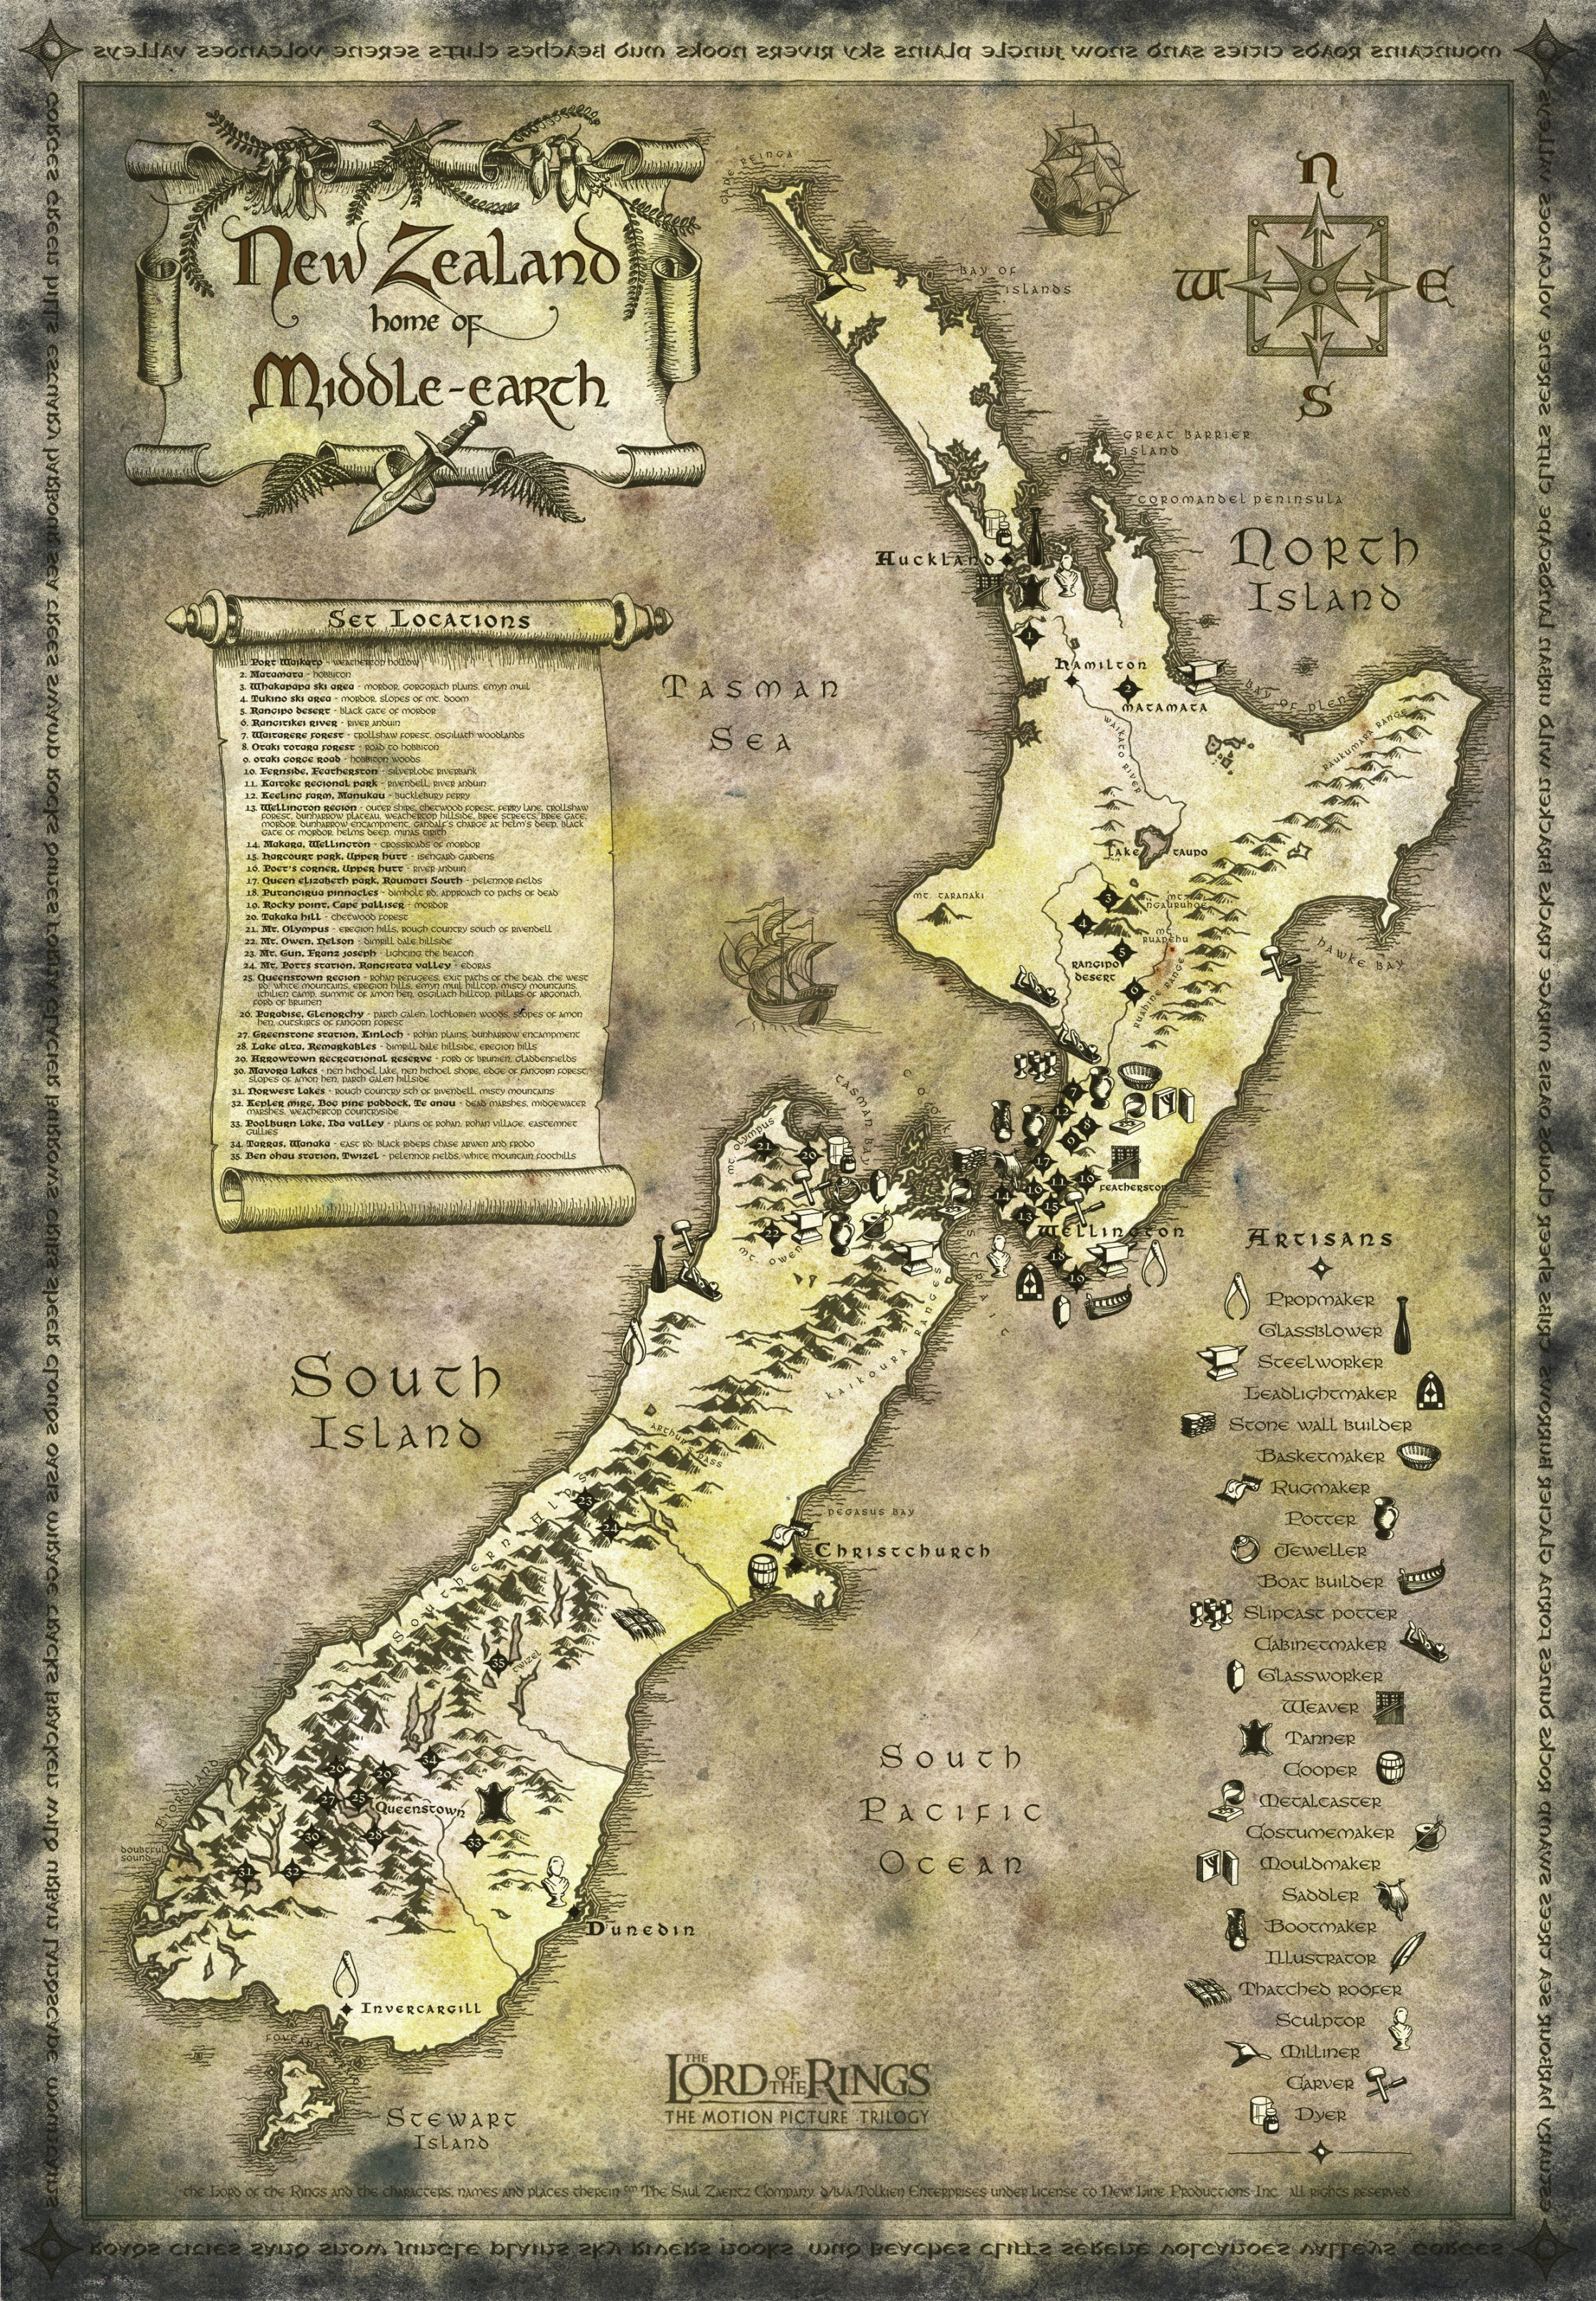 New Zealand Lord of the Rings tourist map – Tourist Map of New Zealand